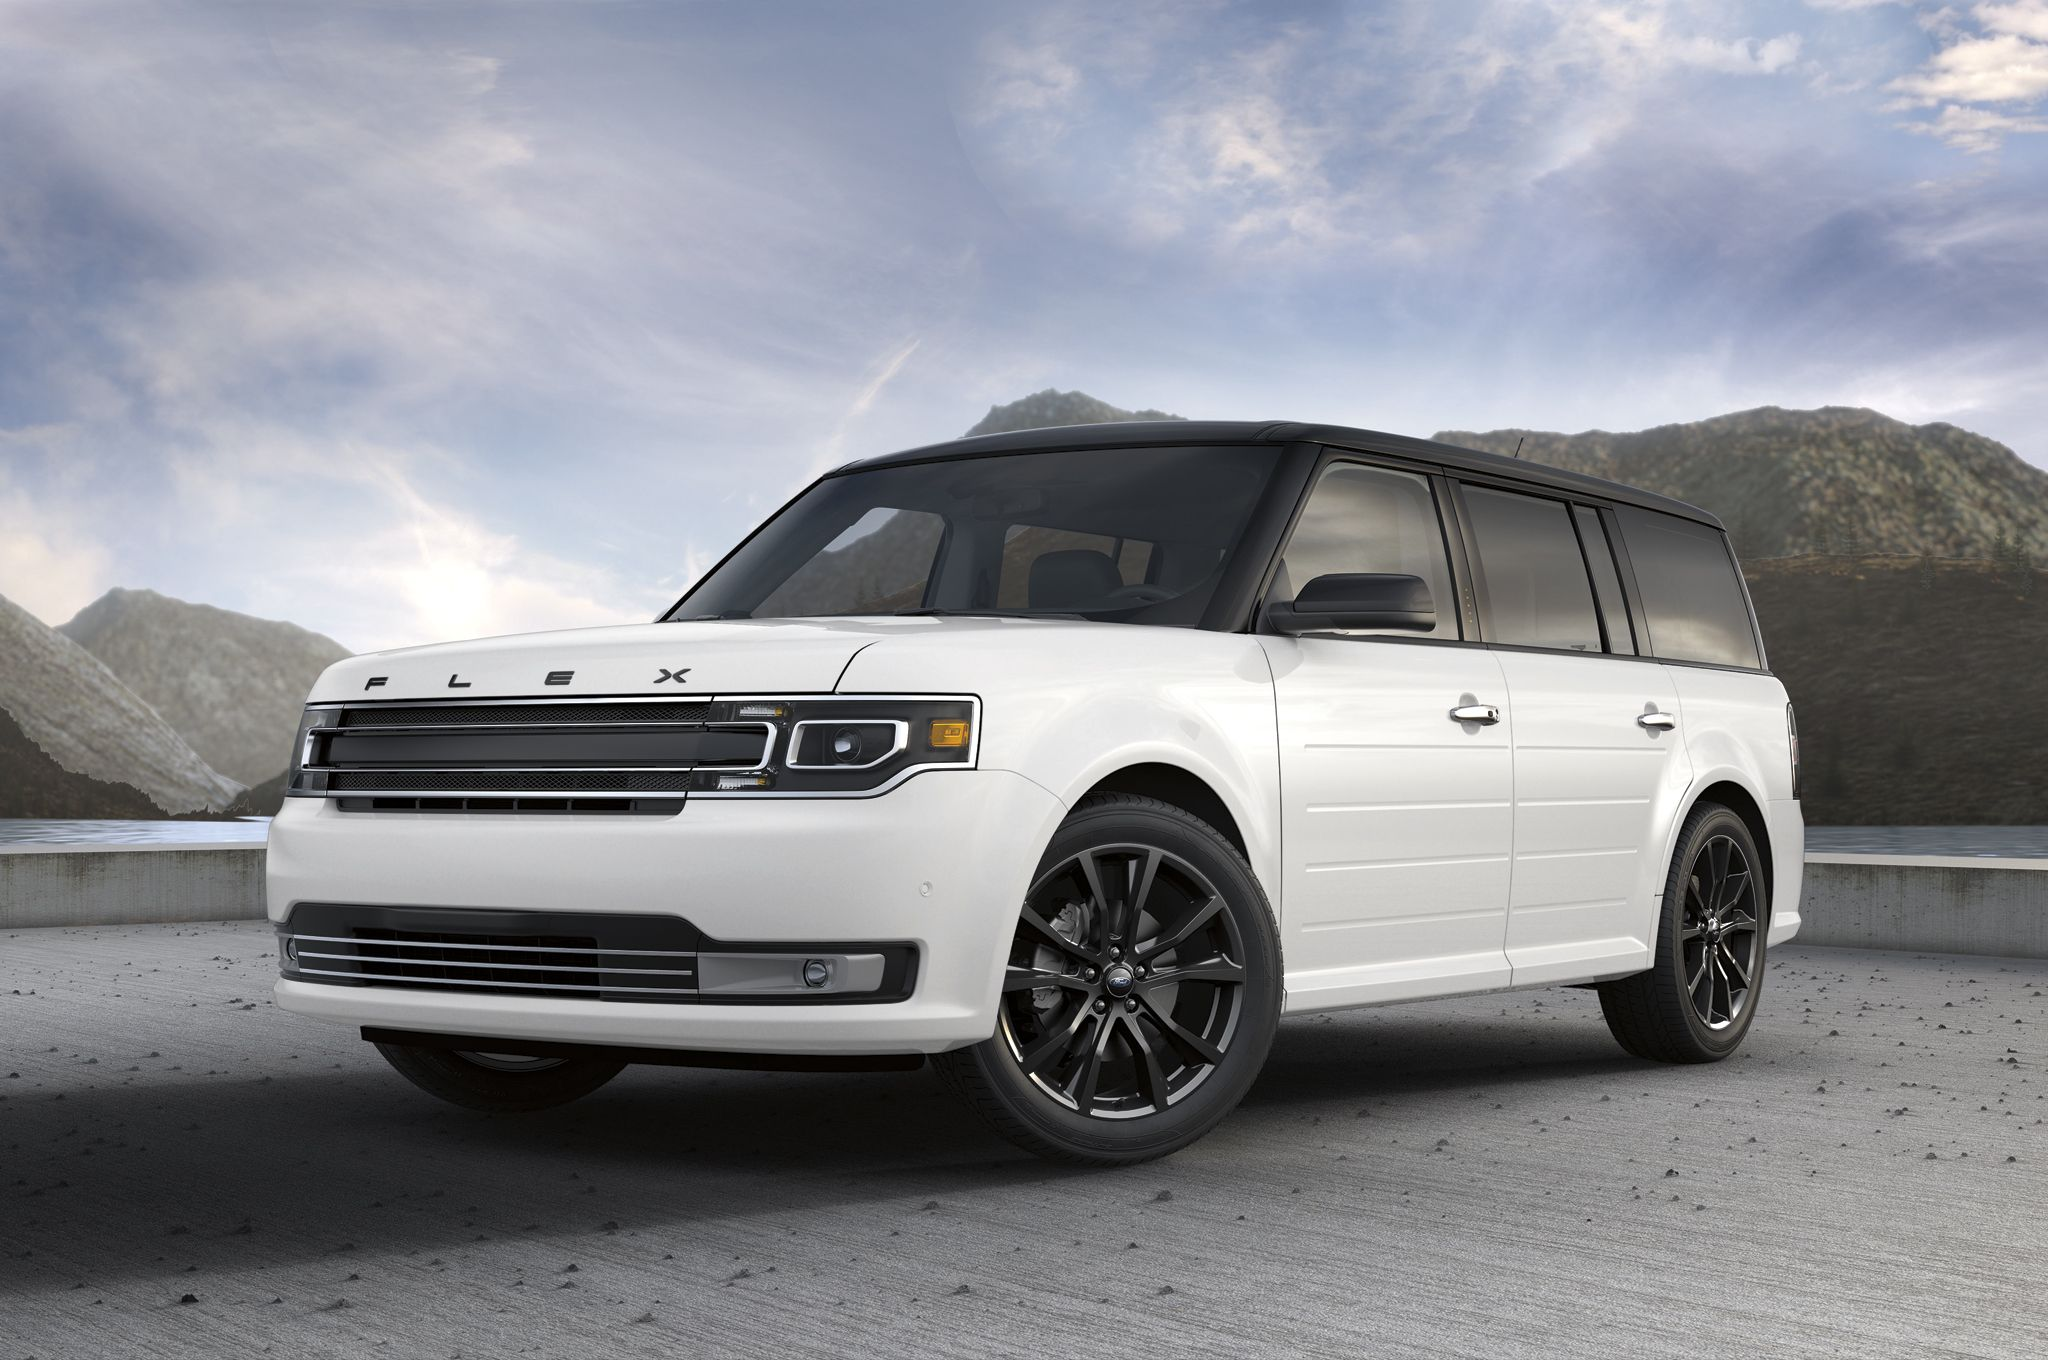 We Hear Ford Flex To Be Discontinued By 2020